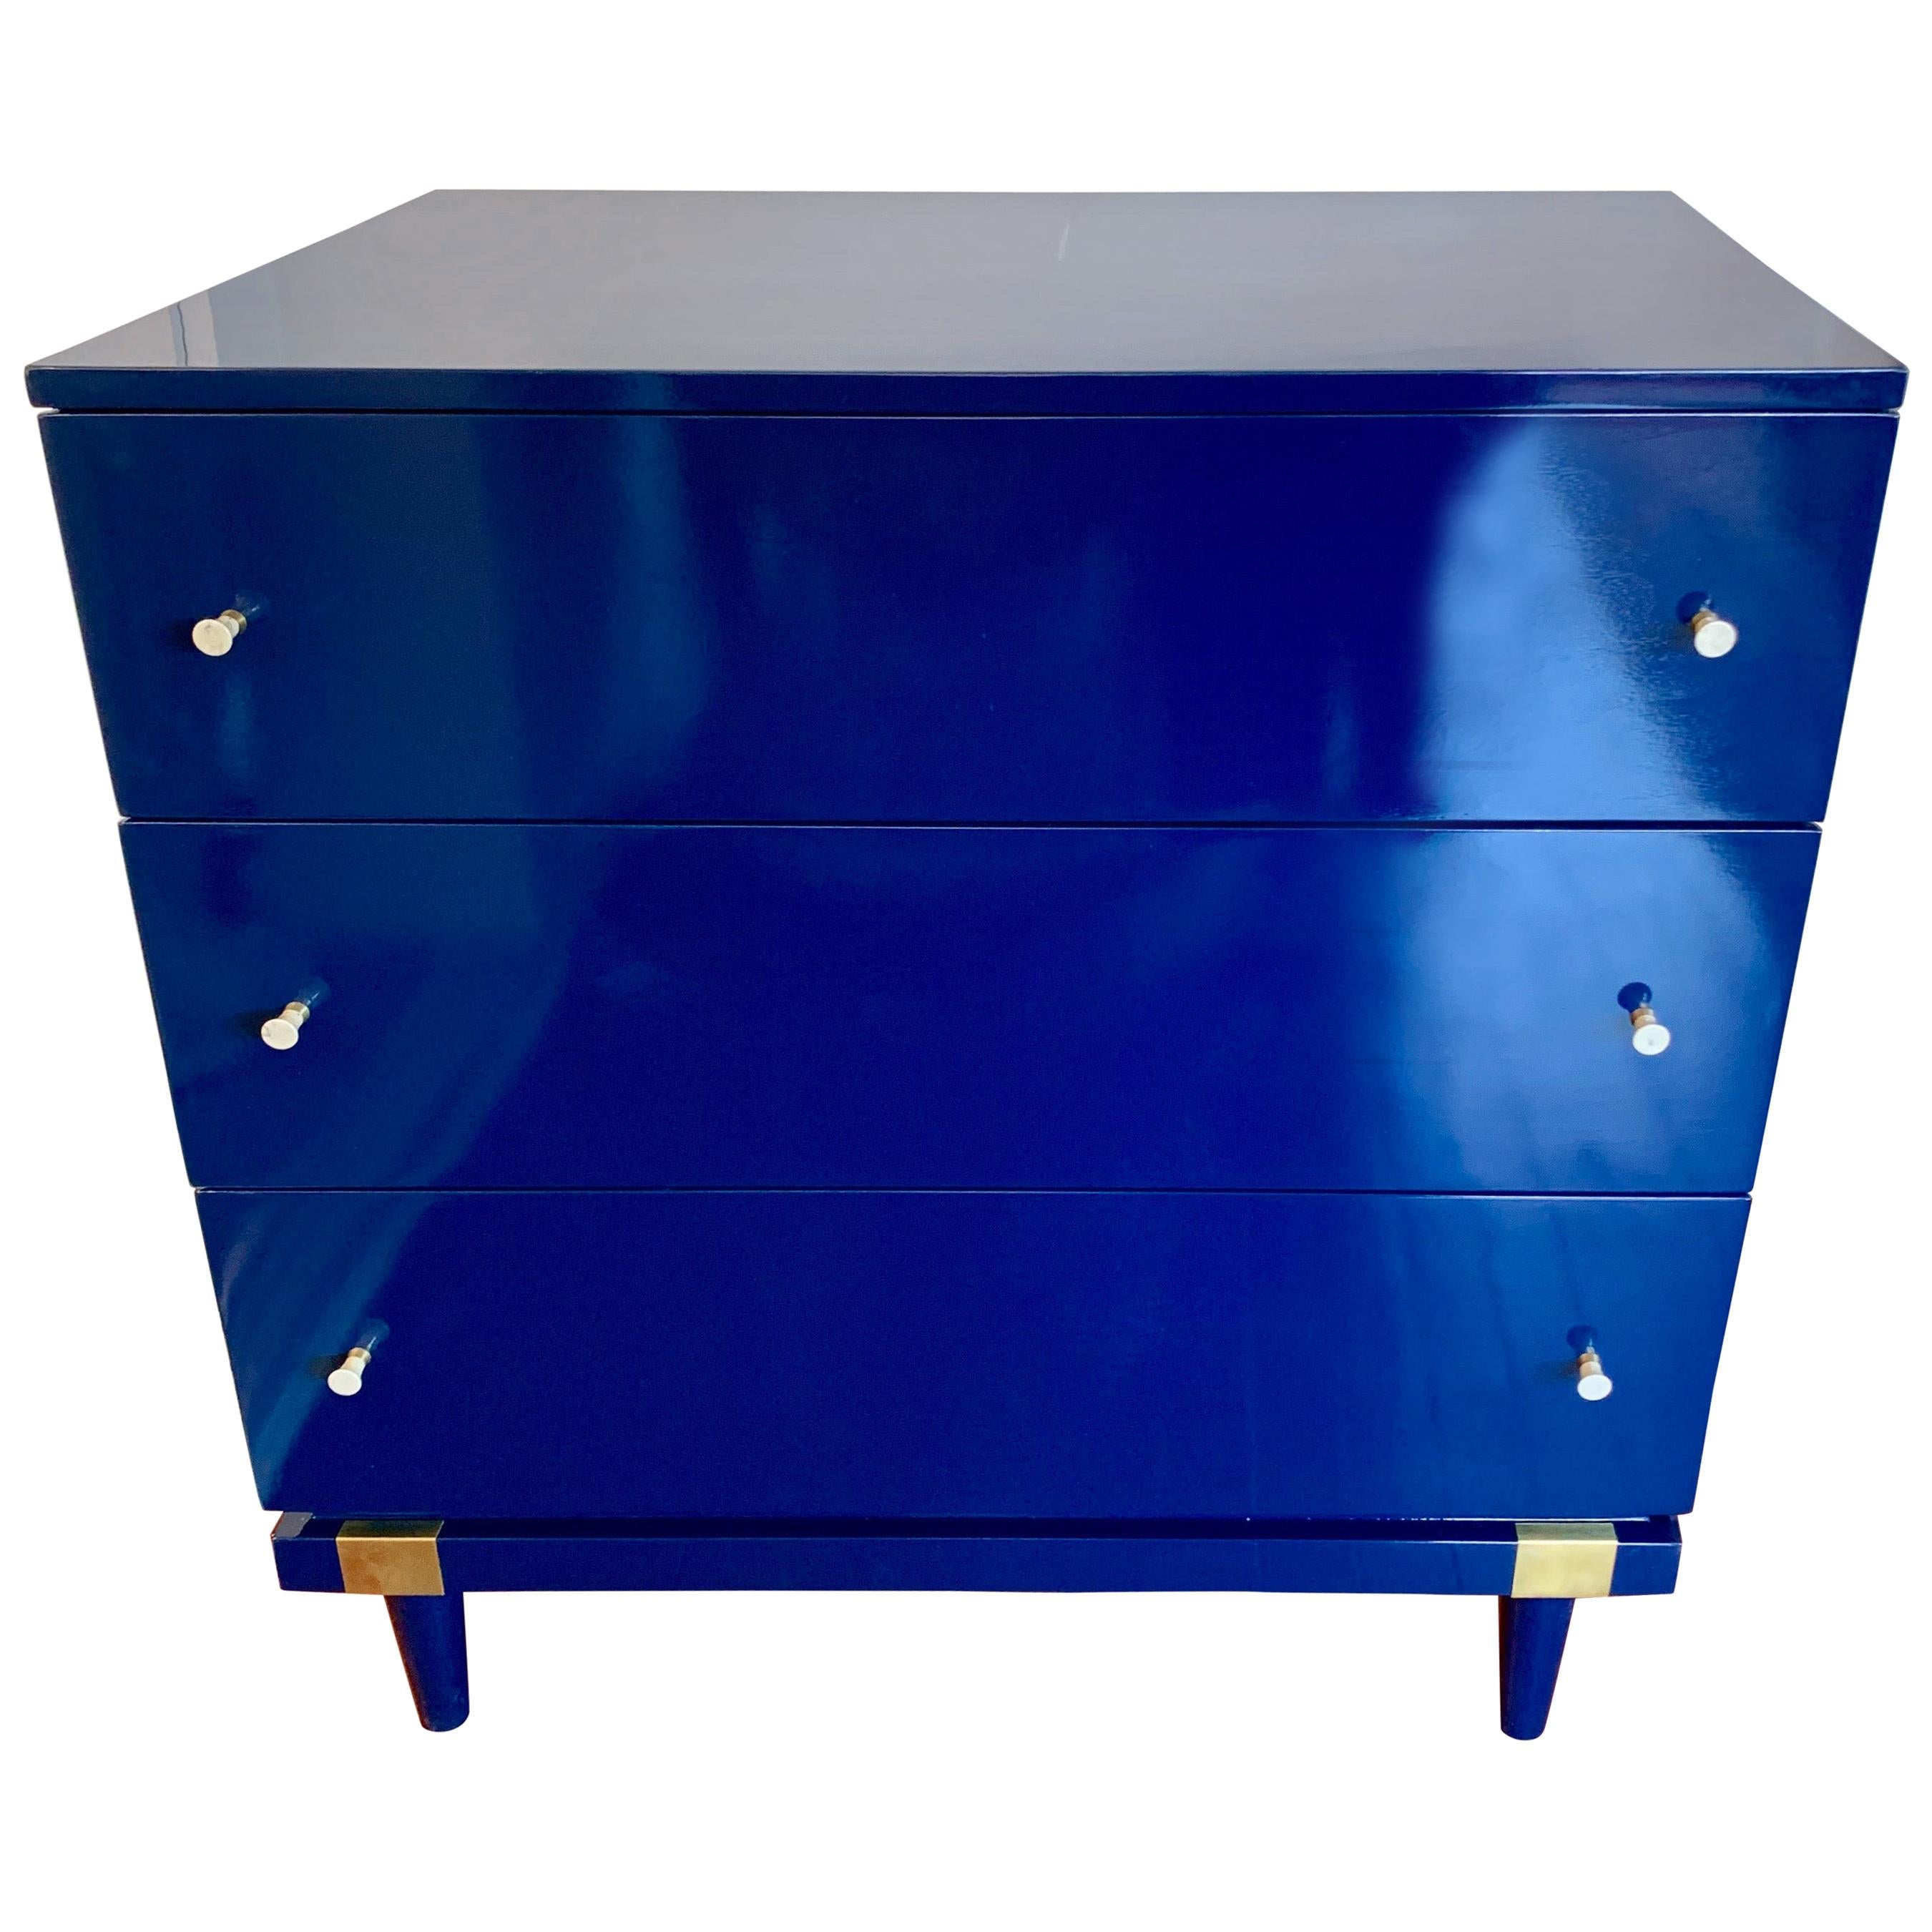 Pair of Matching Mengel Blue Lacquered Raymond Loewy Chest of Drawers Dressers